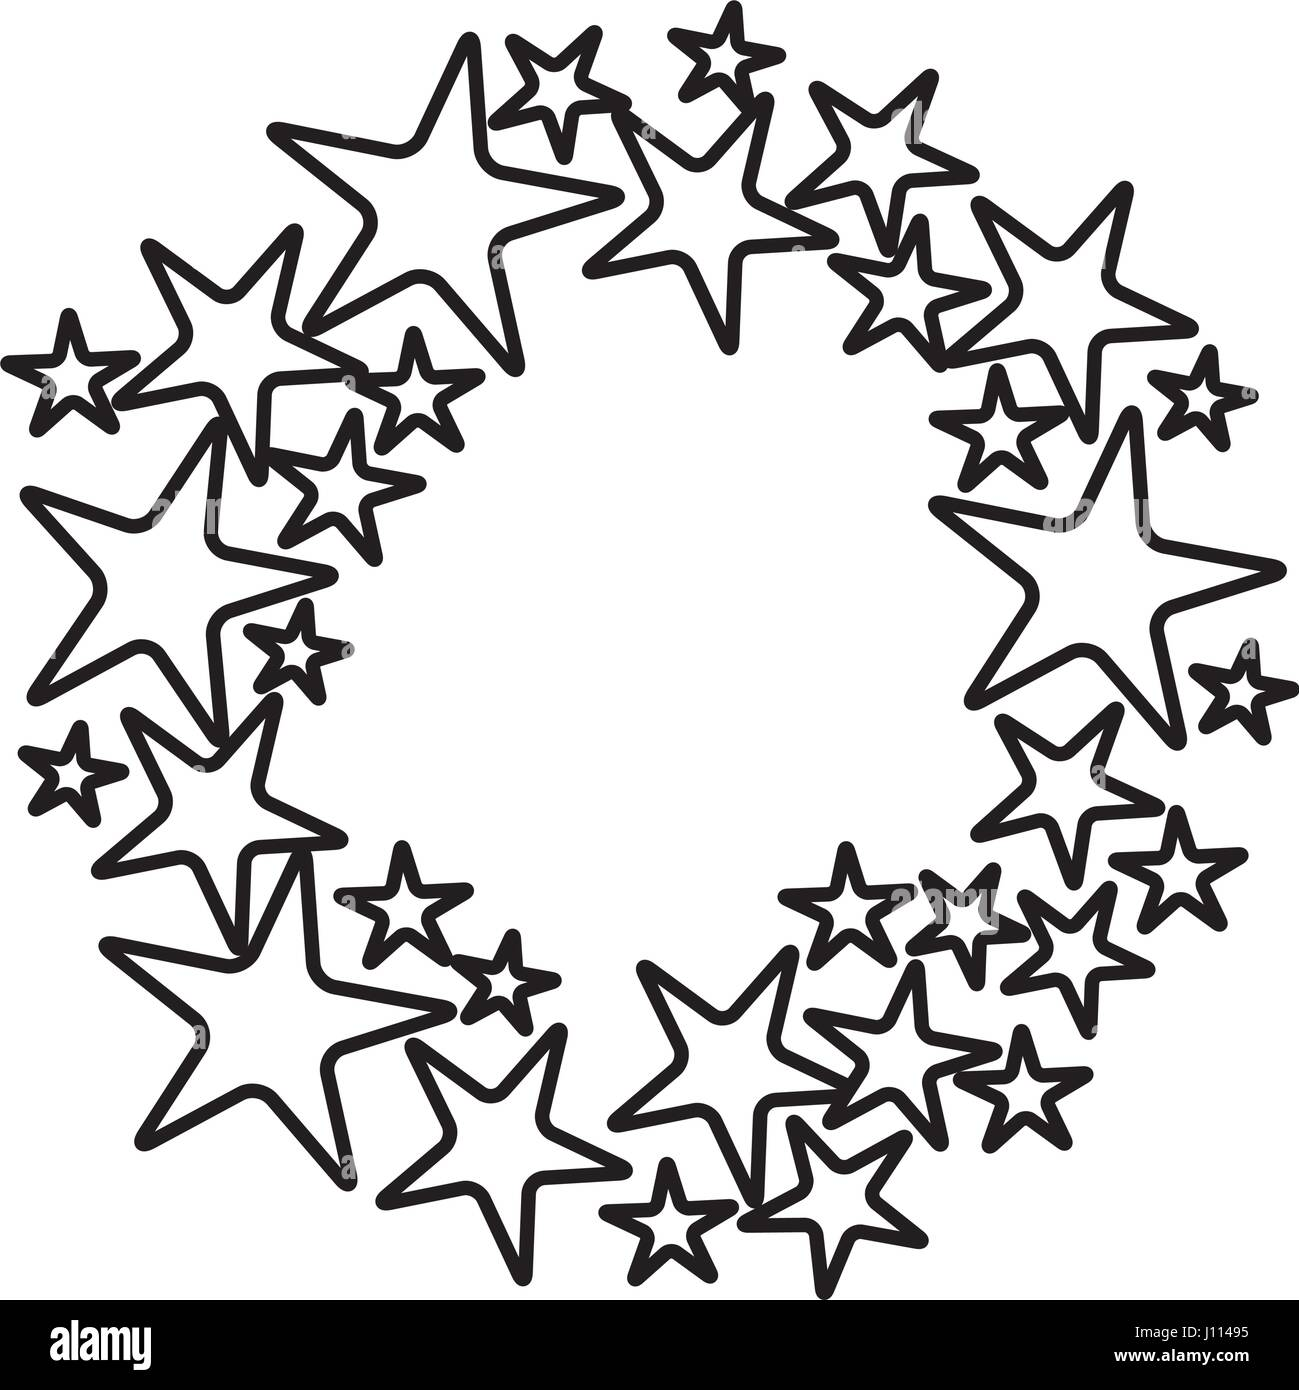 Contorno Stella Black And White Stars Immagini And Black And White Stars